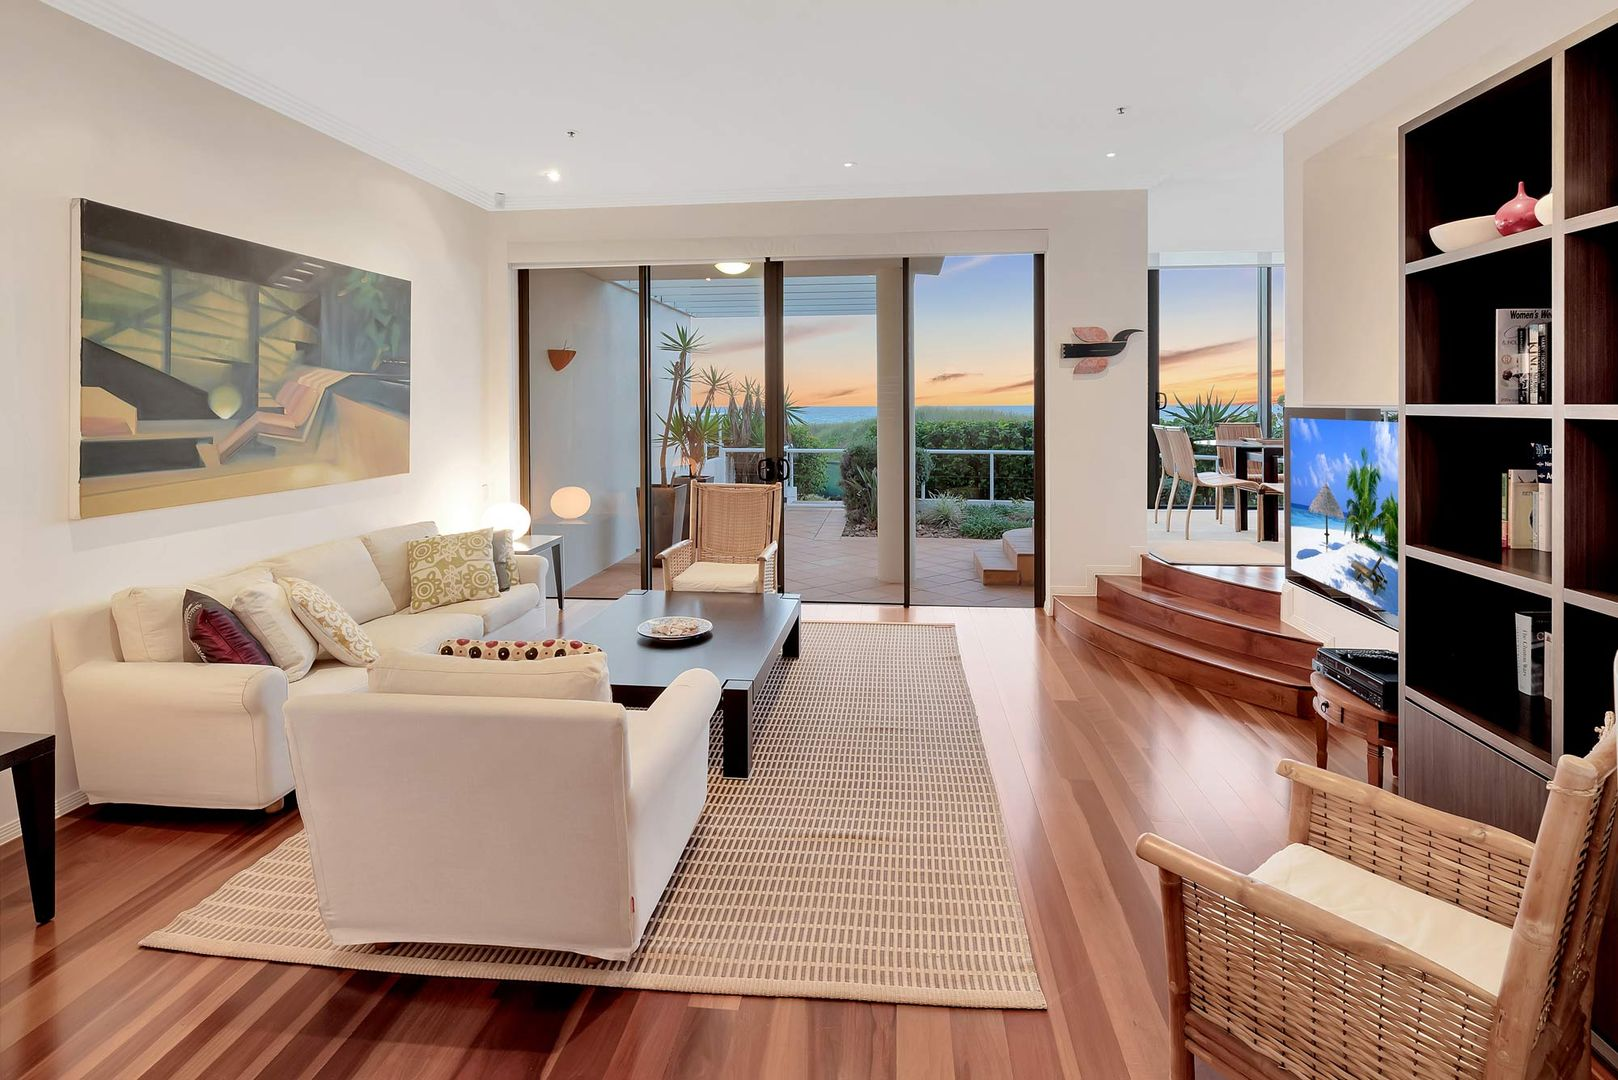 Beach House 2 13-25 Garfield Terrace, Surfers Paradise QLD 4217, Image 2